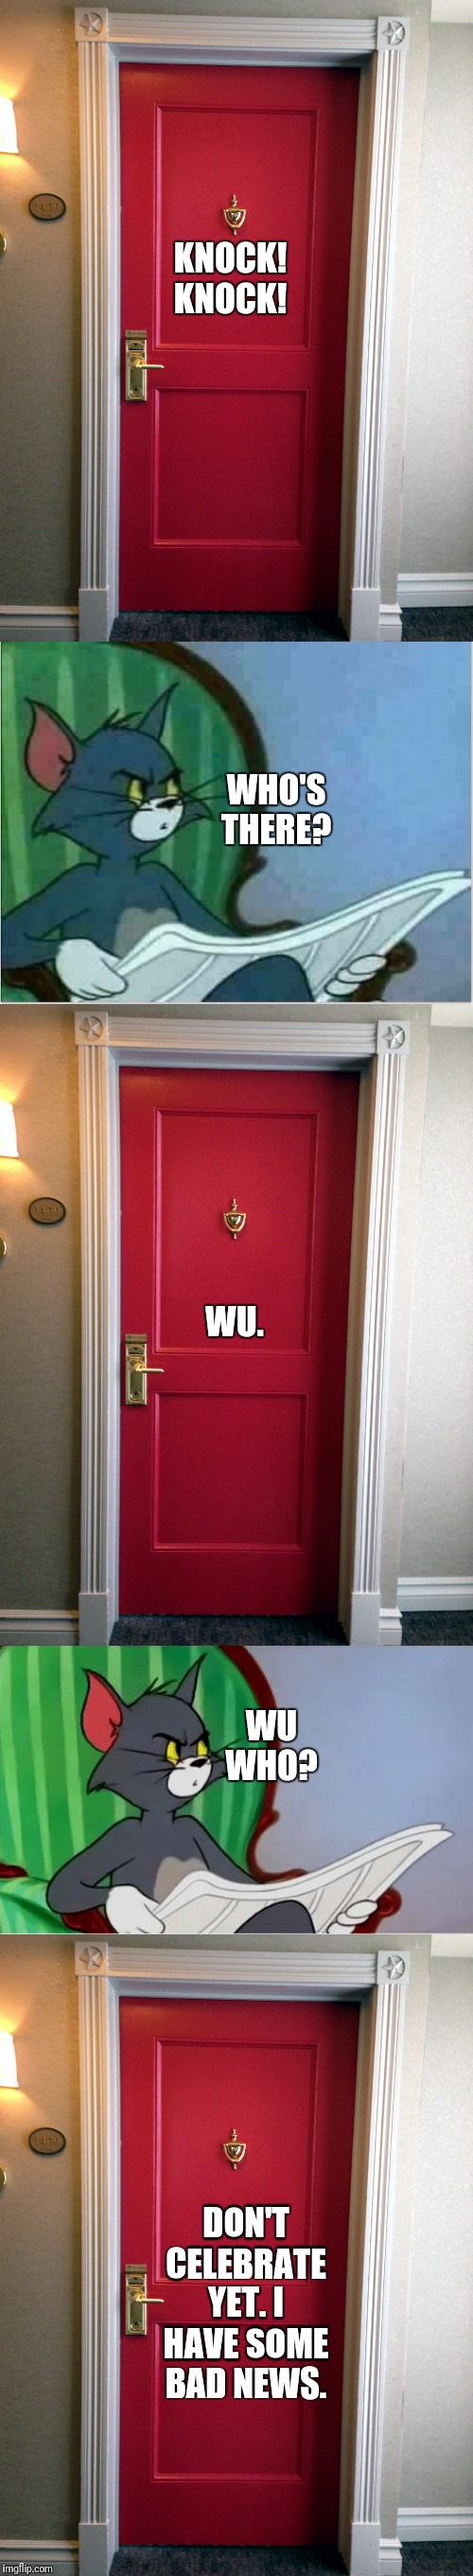 Knock! Knock! | KNOCK! KNOCK! WHO'S THERE? WU. WU WHO? DON'T CELEBRATE YET. I HAVE SOME BAD NEWS. | image tagged in hotel door,interrupting tom's read,tom reading newspaper,knock knock,joke | made w/ Imgflip meme maker